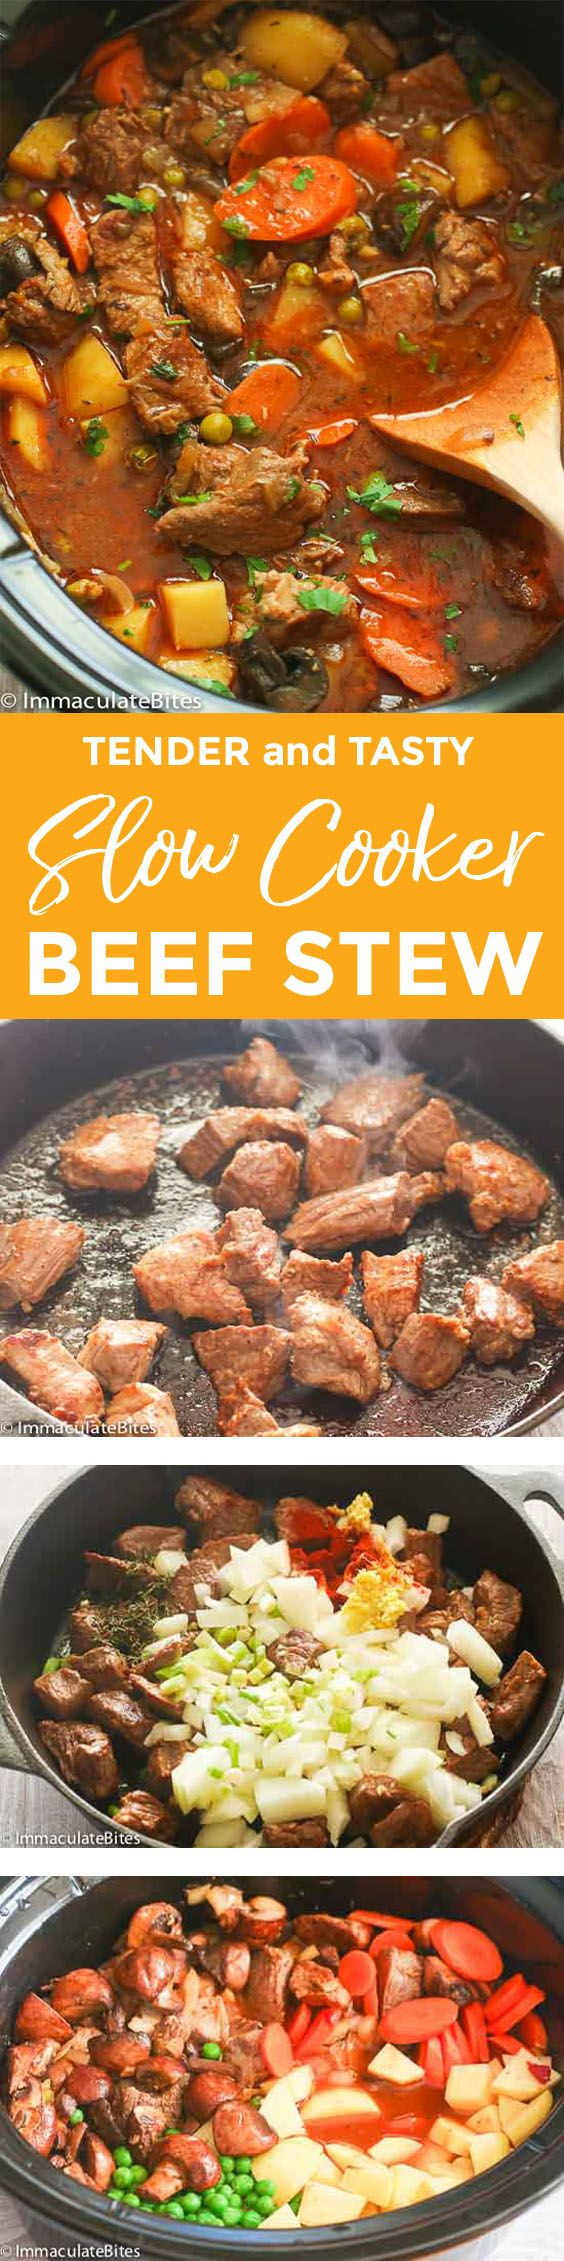 Slow Cooker Beef Stew – a savory, hearty bowl of beef stew slowly cooked to perfection with the aroma from onion, ginger, fresh thyme and smoked paprika and some vegetable add ons of potatoes, carrots and peas. A perfect winter season comfort food! This is the season of the year where I …